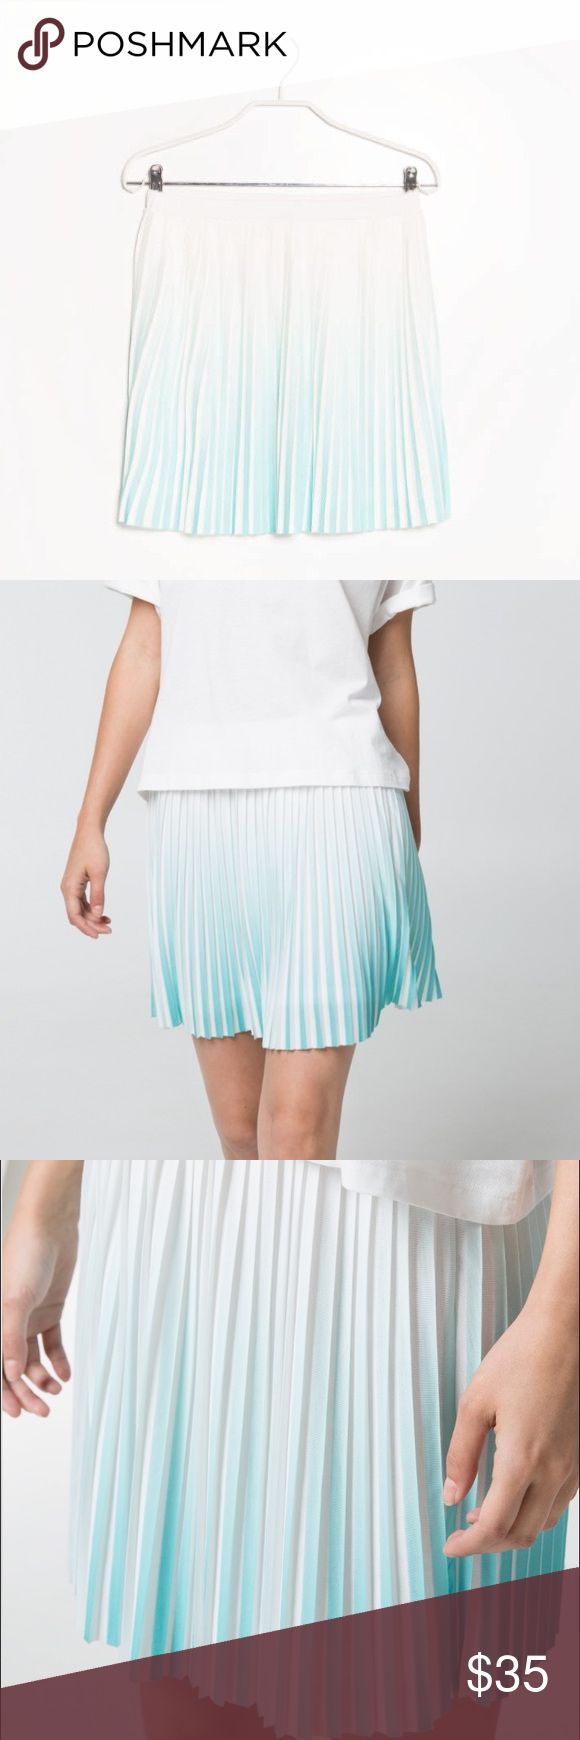 Ombré Mango Pleated Skirt S Never worn ombré mango skirt, light blue teal color. Can be worn high wasted or Lower as in the photos. Sold out on mango!!! Mango Skirts